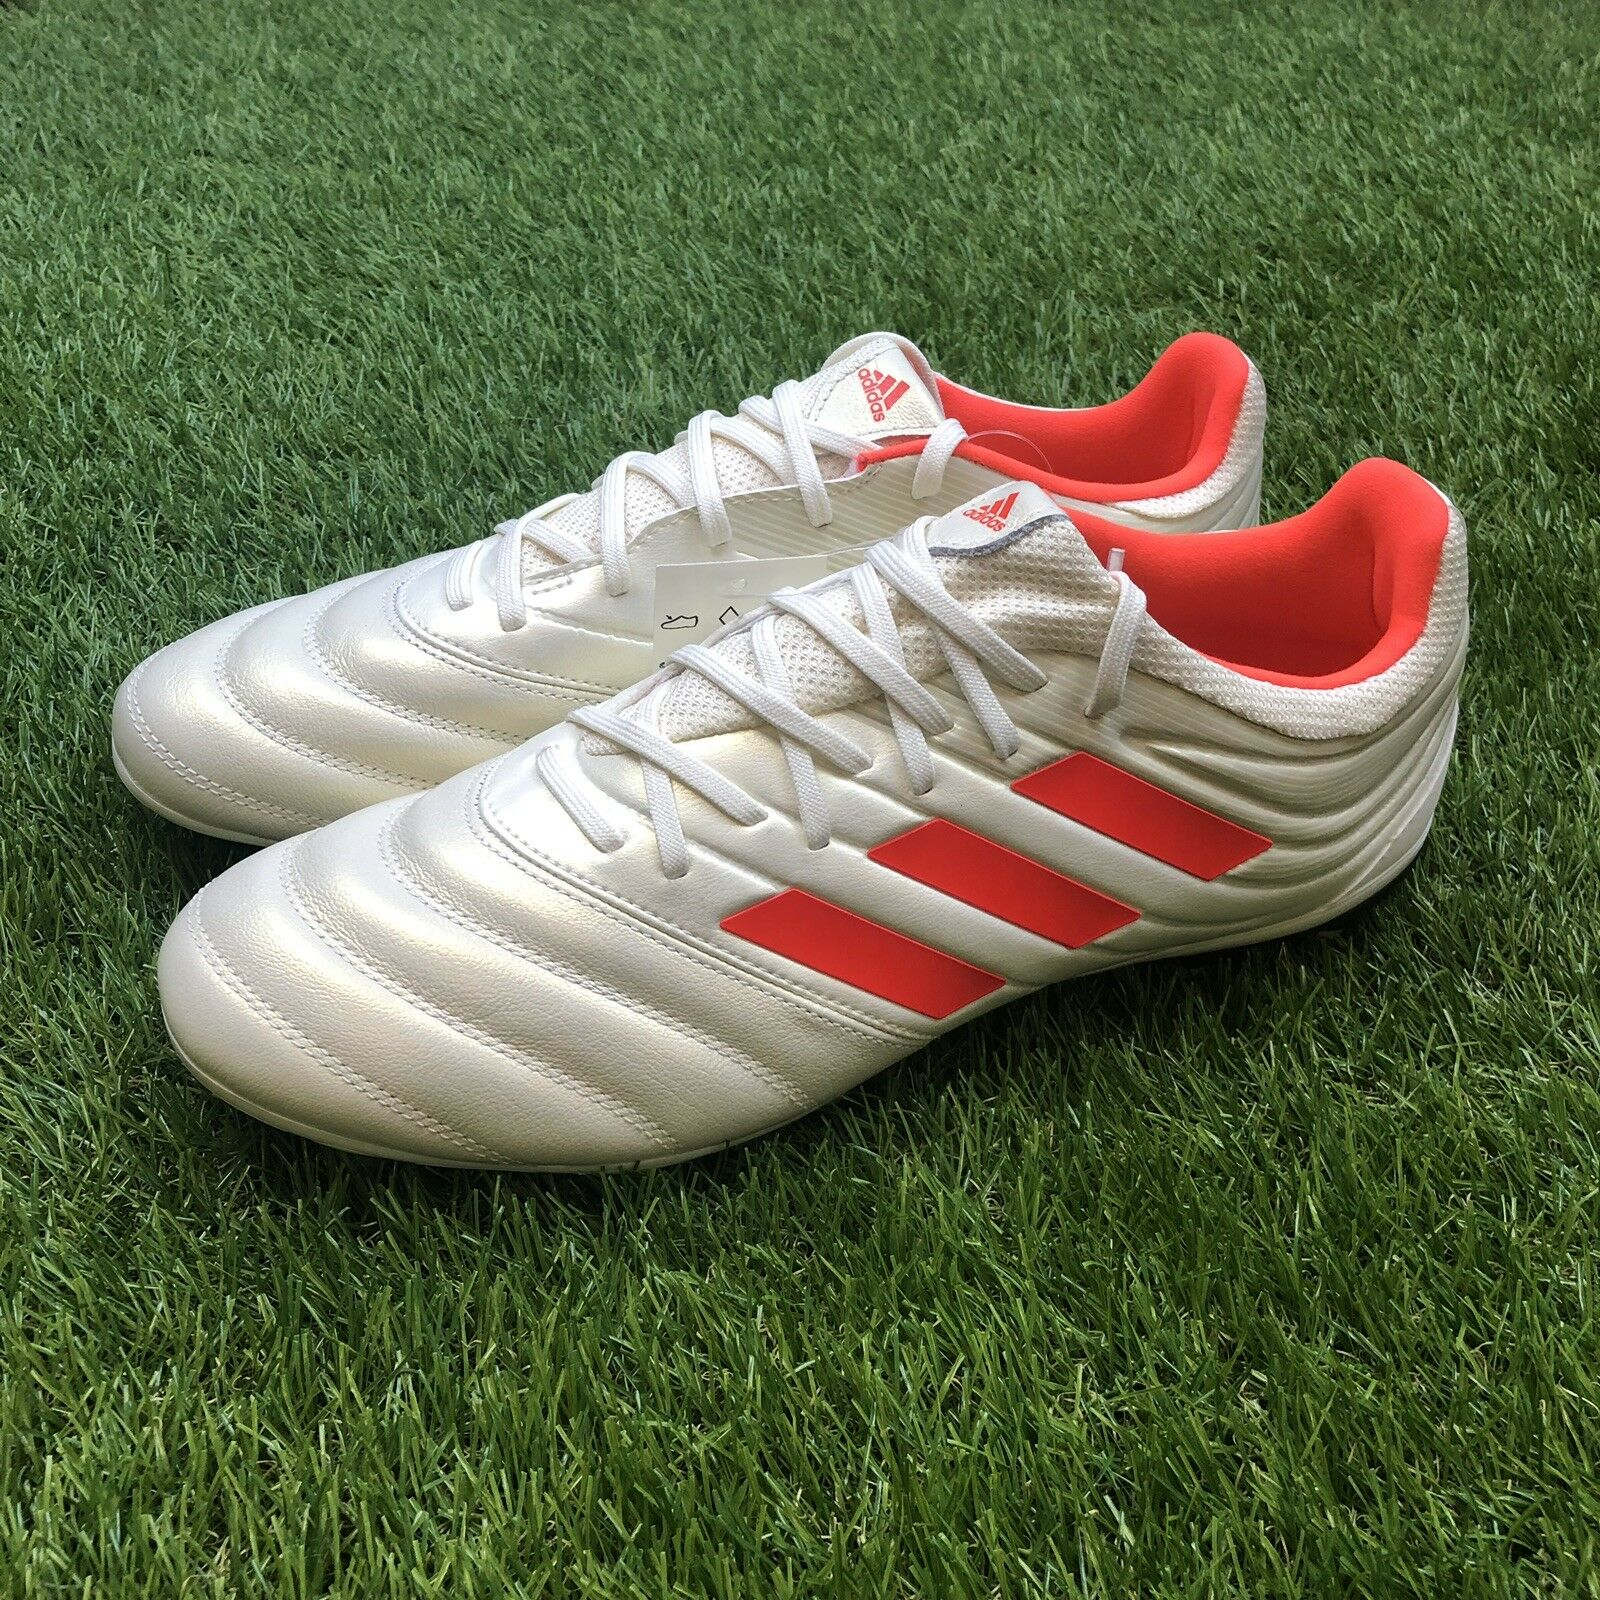 2c113f448 New Adidas Copa Copa Copa 19.3 FG Size 9 Firm Ground Soccer Cleats shoes  White BB9187 ed603d